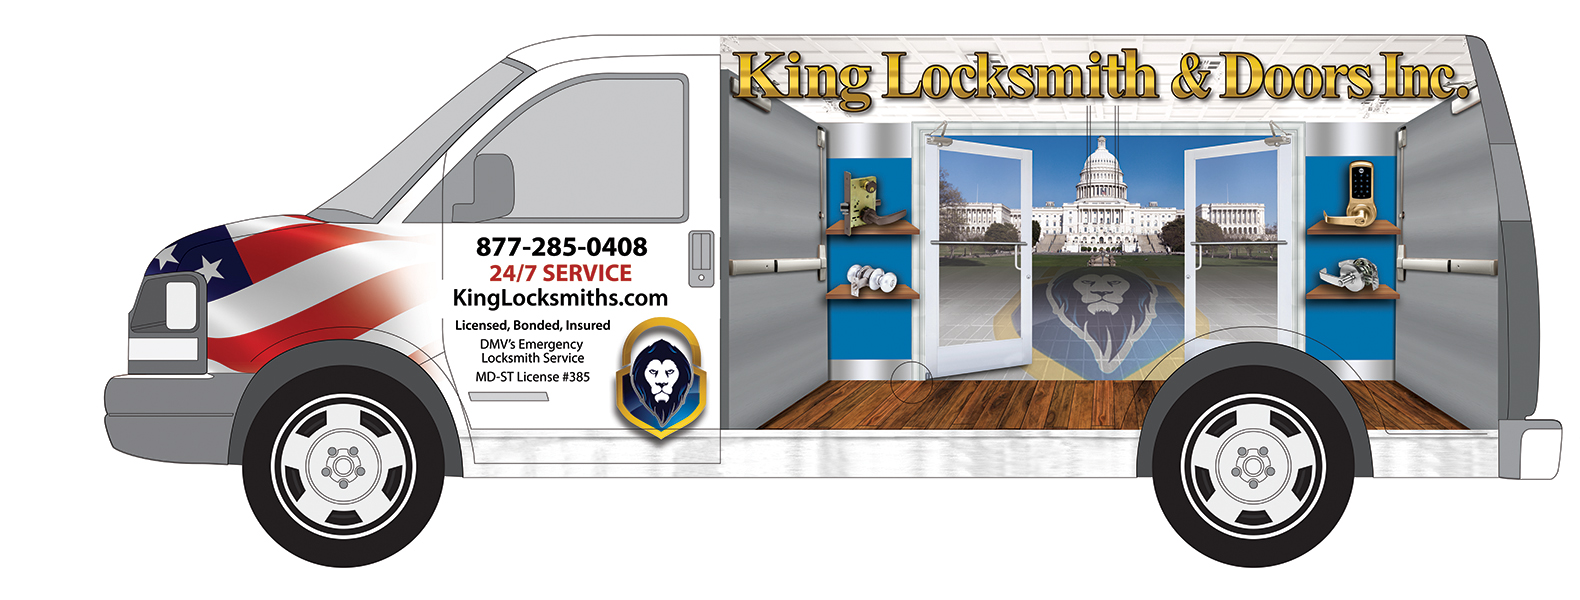 King Locksmith Van Wrap Design